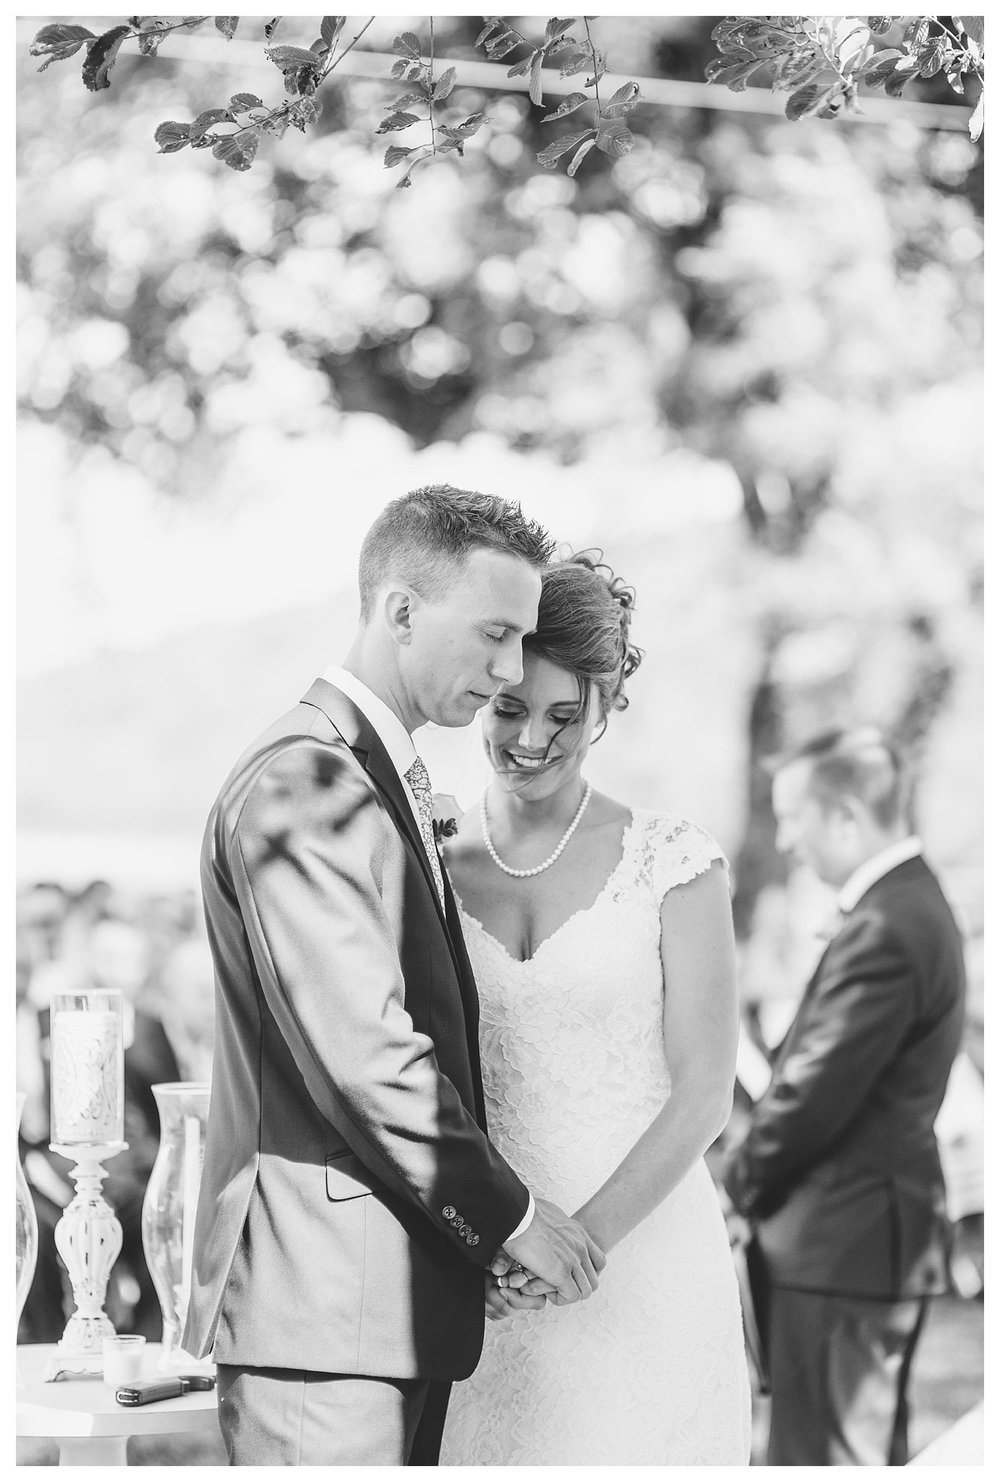 richwood-on-the-river-everleigh-photography-roby-and-tabitha-foree-wedding-53